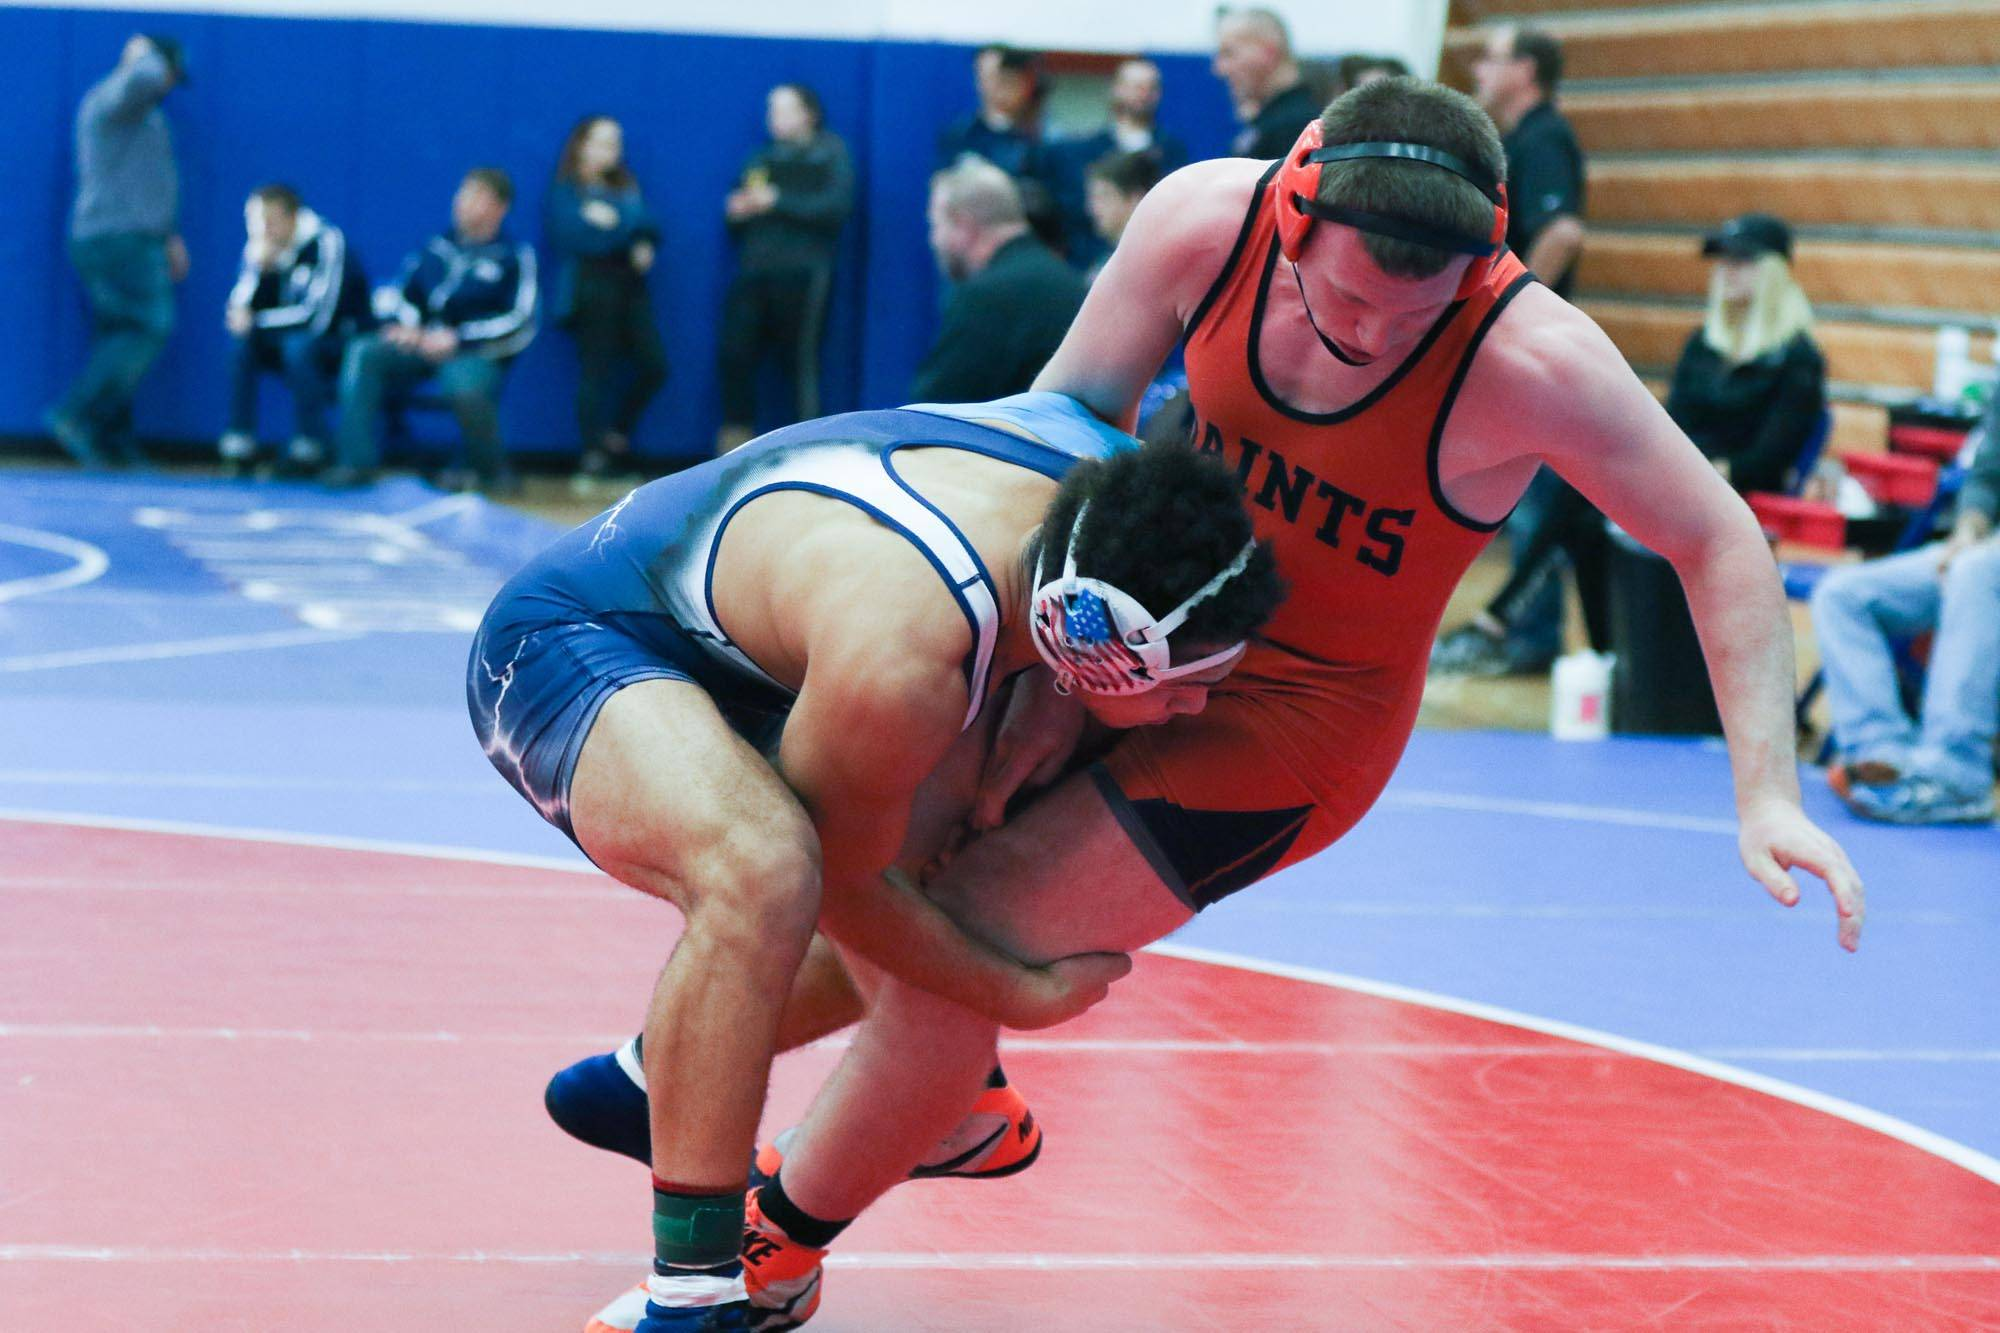 West Aurora's Steven Norman shoots the legs of St. Charles East's Cody Glidwell during their 182-pound final match at Larkin Saturday.